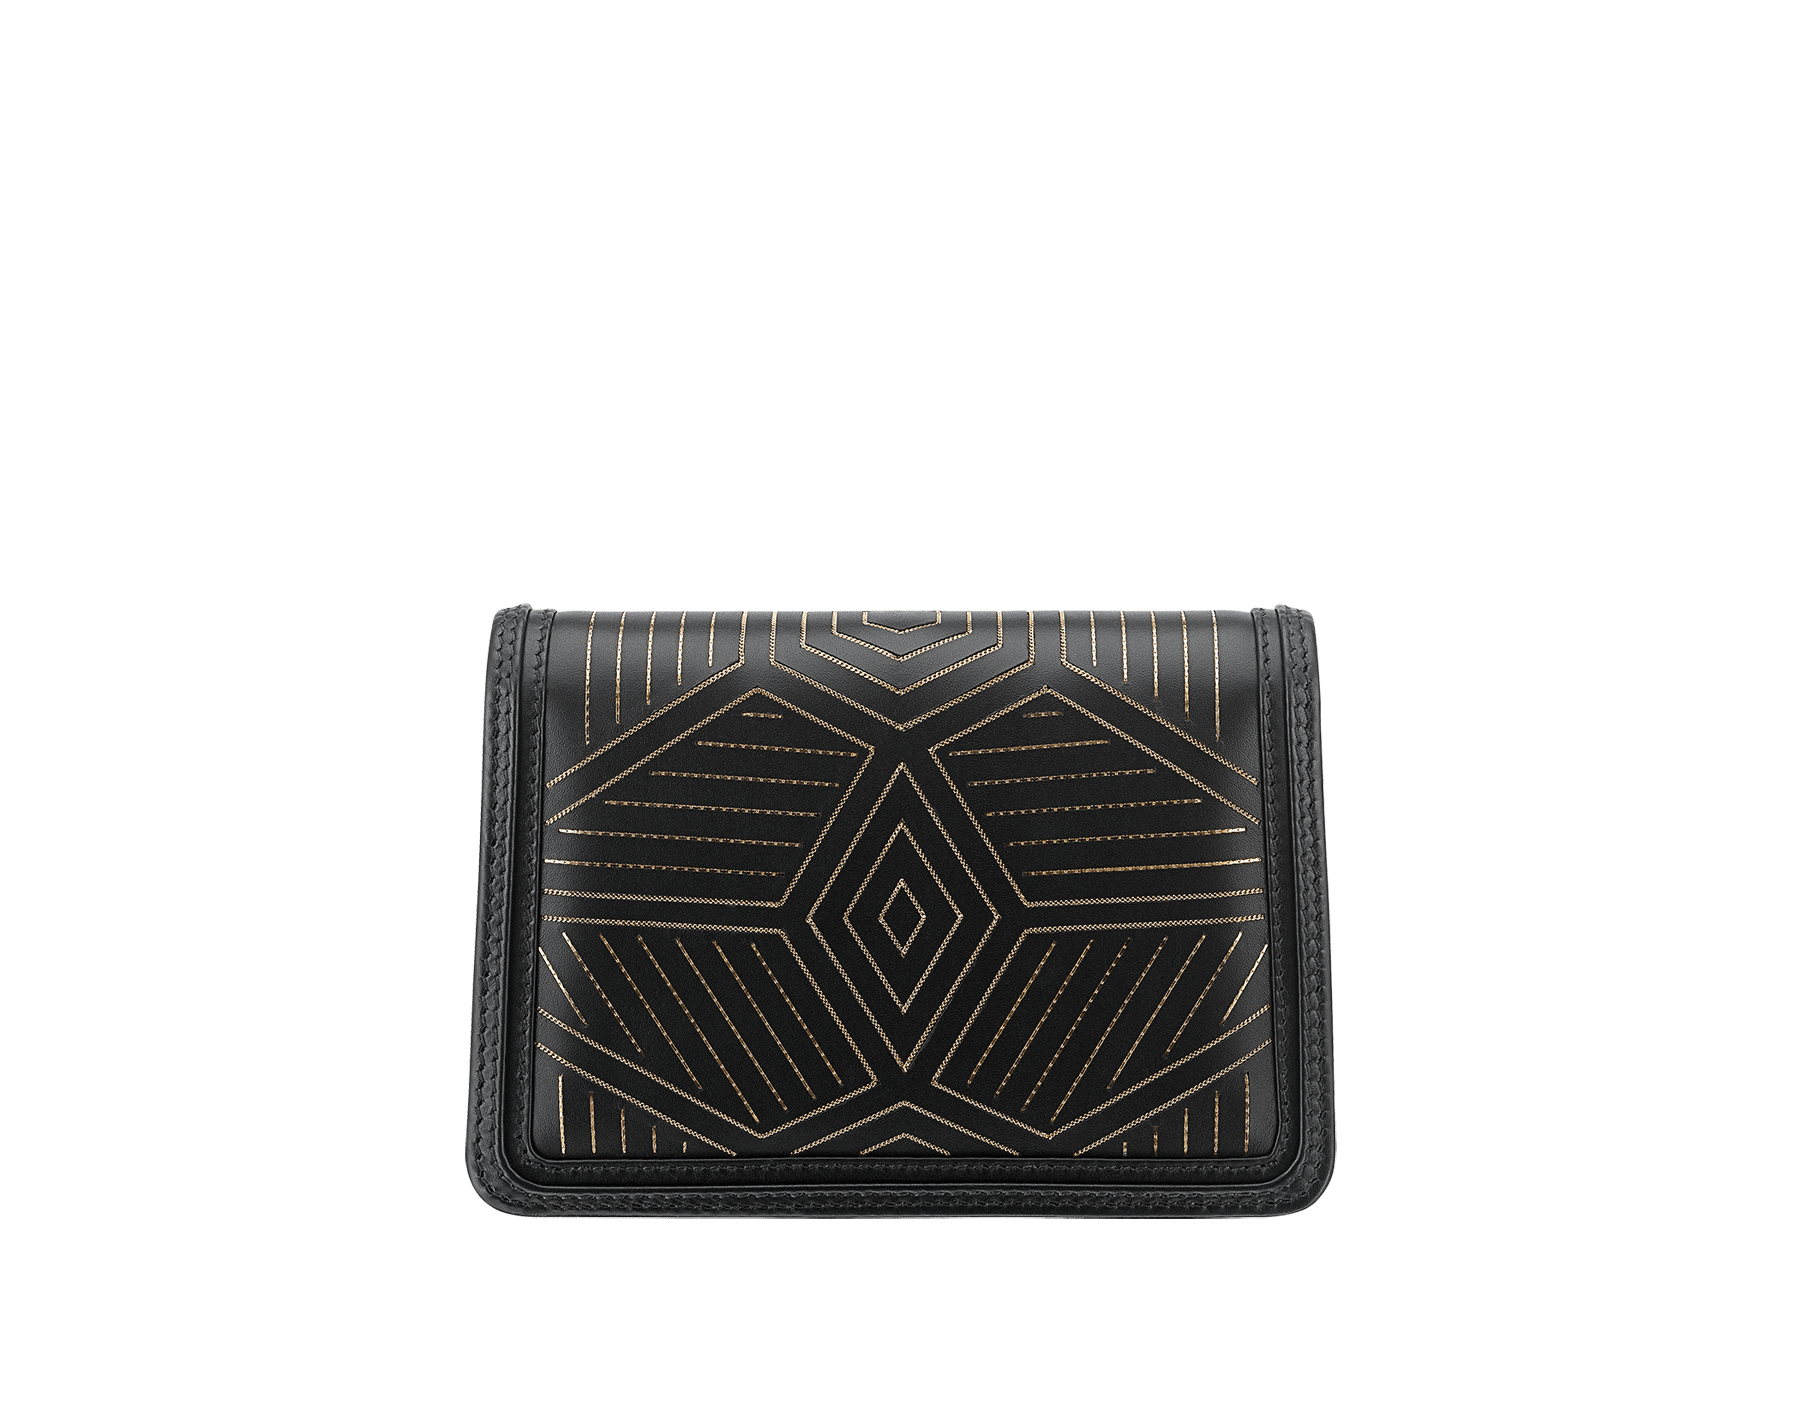 """Serpenti Diamond Blast"" shoulder bag in white agate calf leather, featuring a Whispy Chain motif in light gold finishing. Iconic snakehead closure in light gold-plated brass enriched with black and white agate enamel and black onyx eyes. 987-WC image 3"